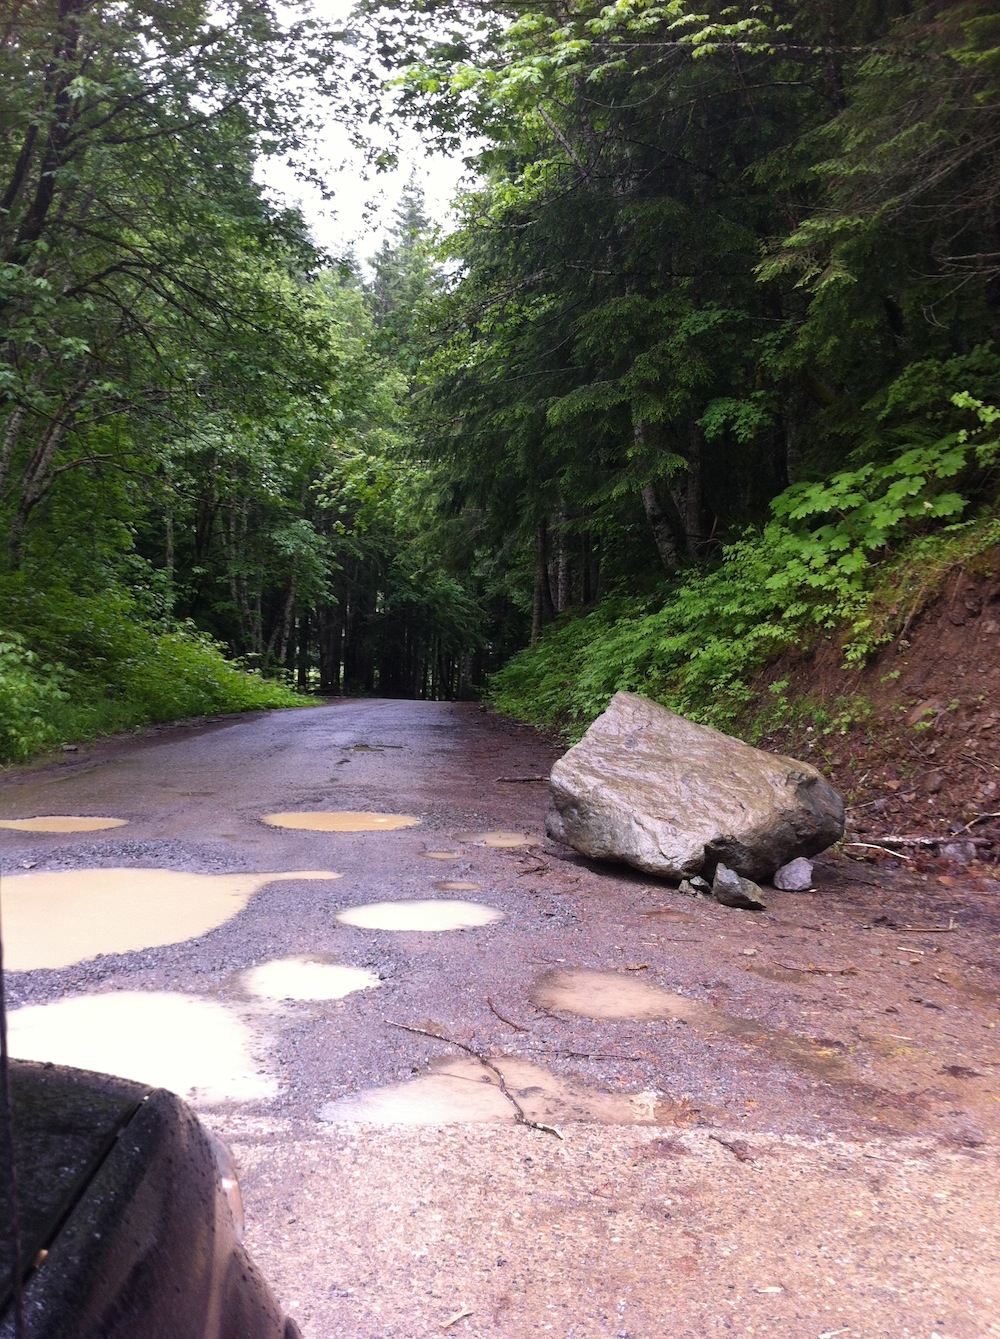 Road of pot holes full of rain along our drive up the mountain